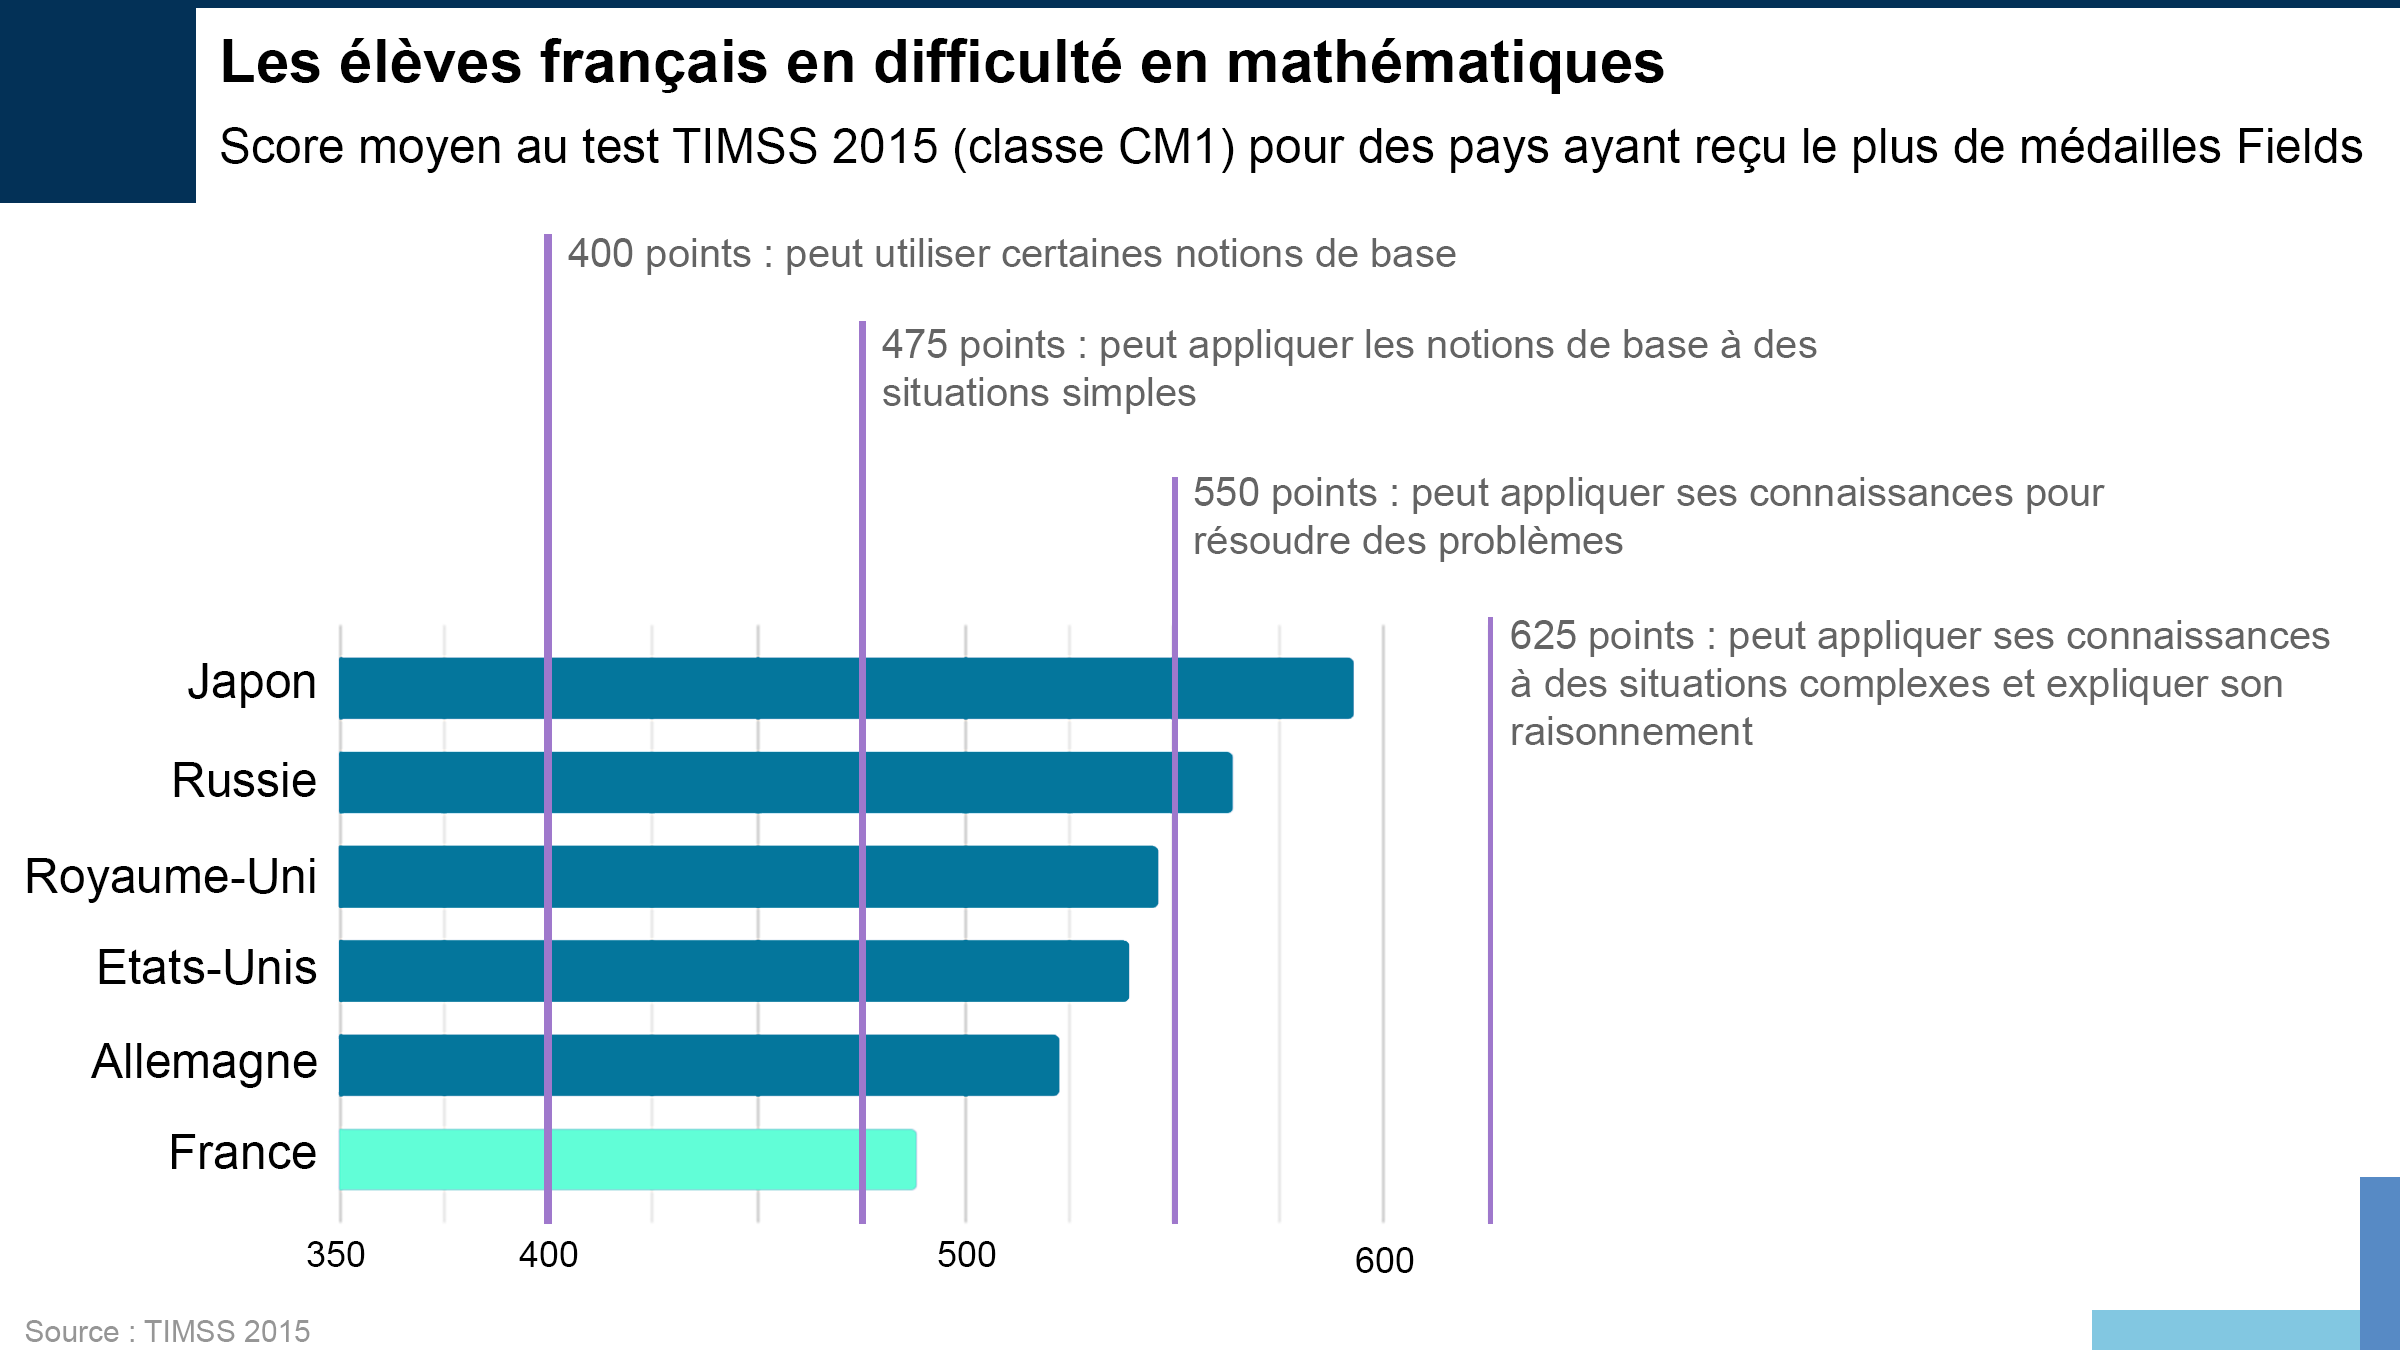 Résultats au test maths TIMSS